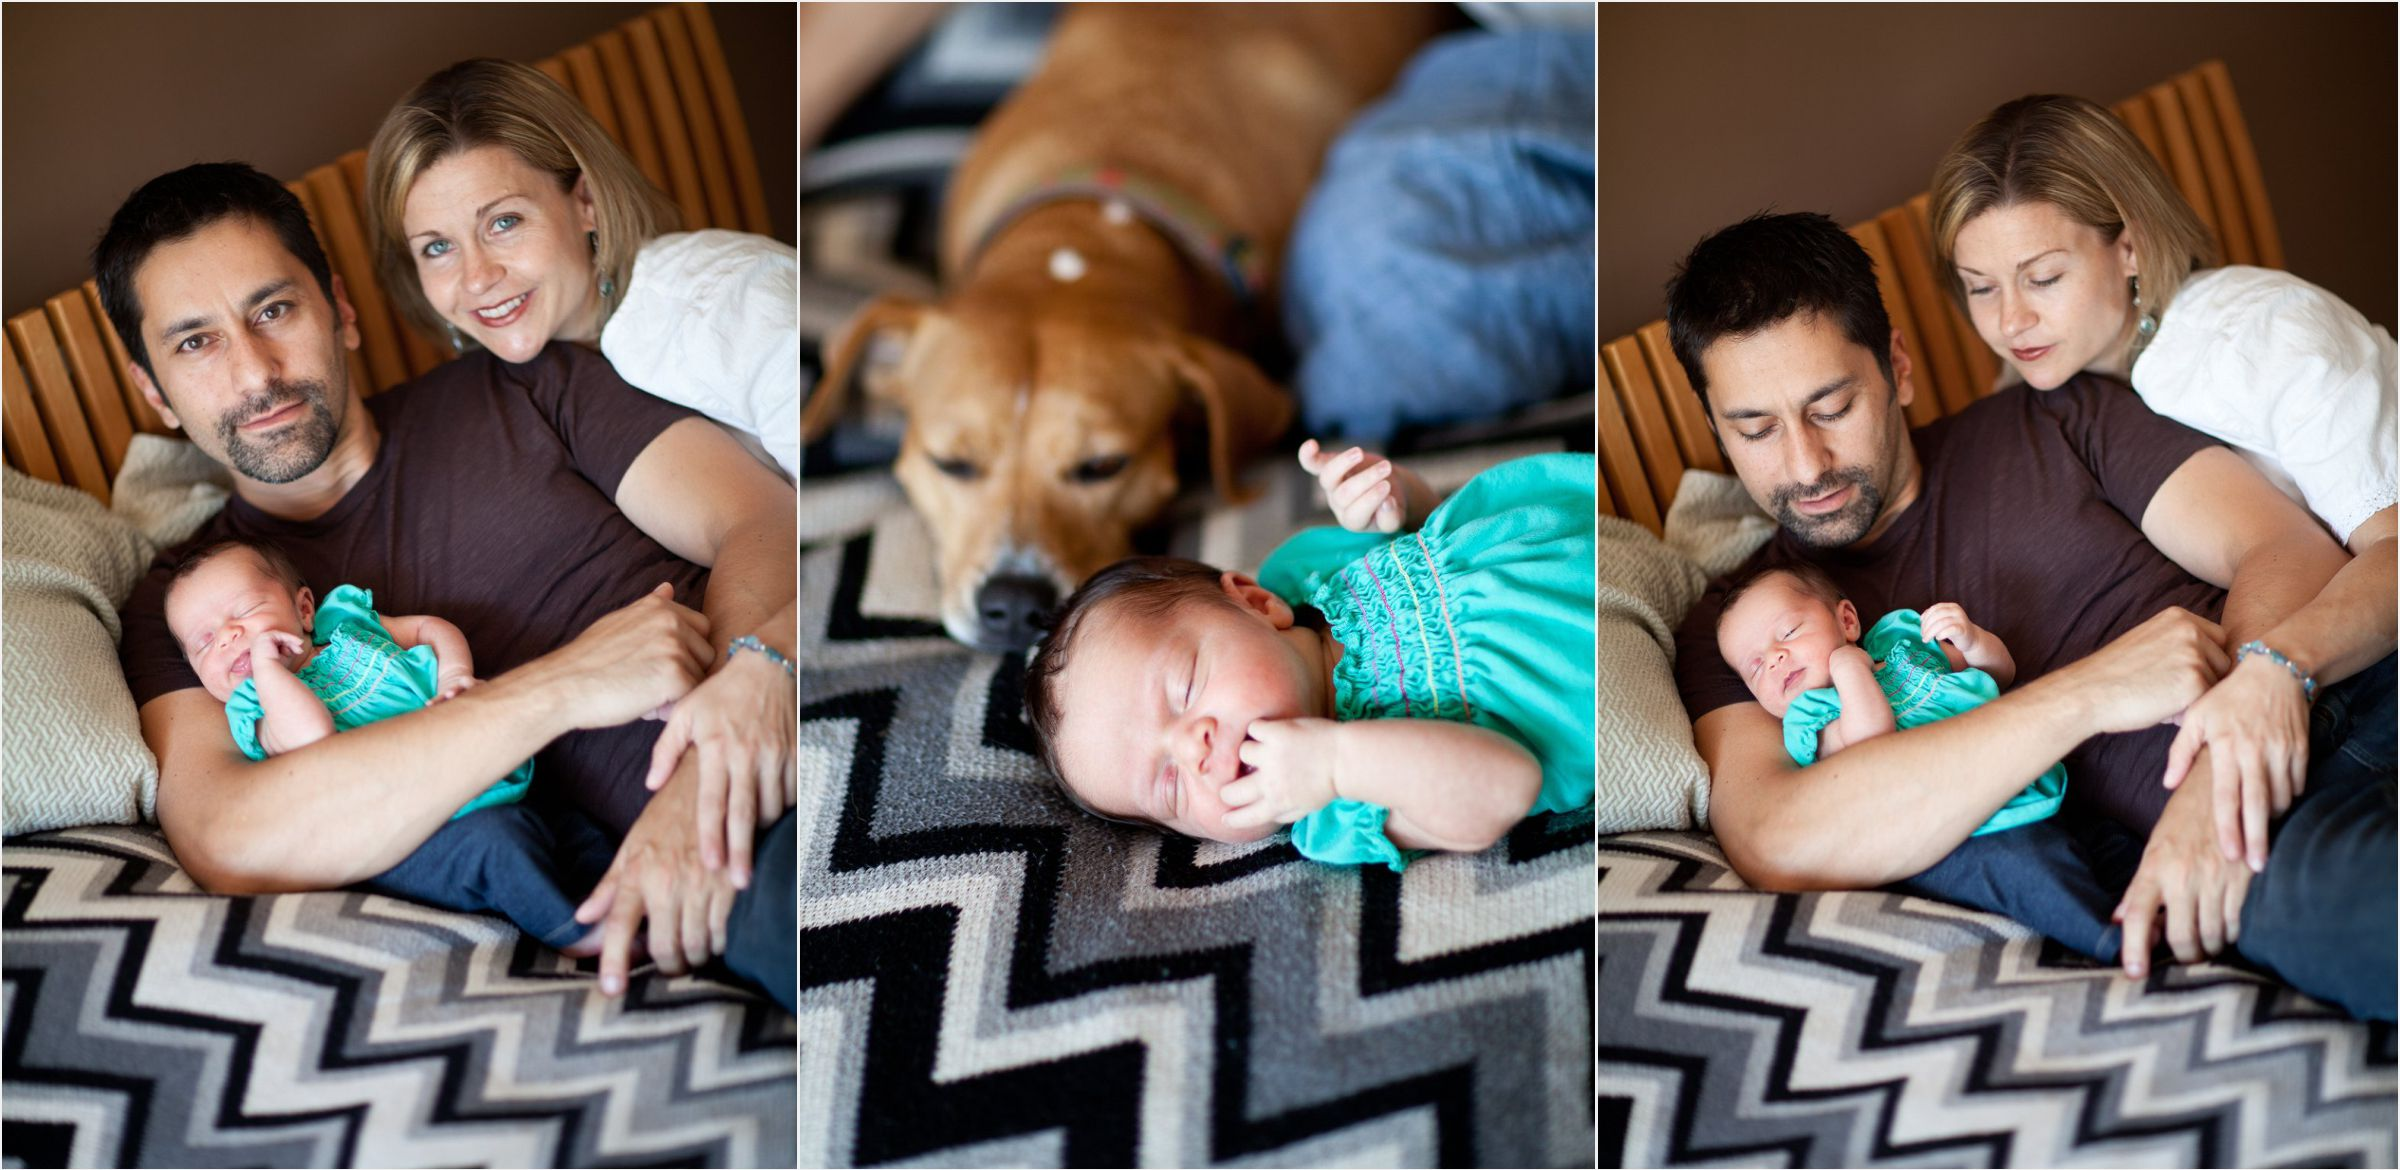 Dog-meets-baby-at-Denver-home-location-photoshoot-0003